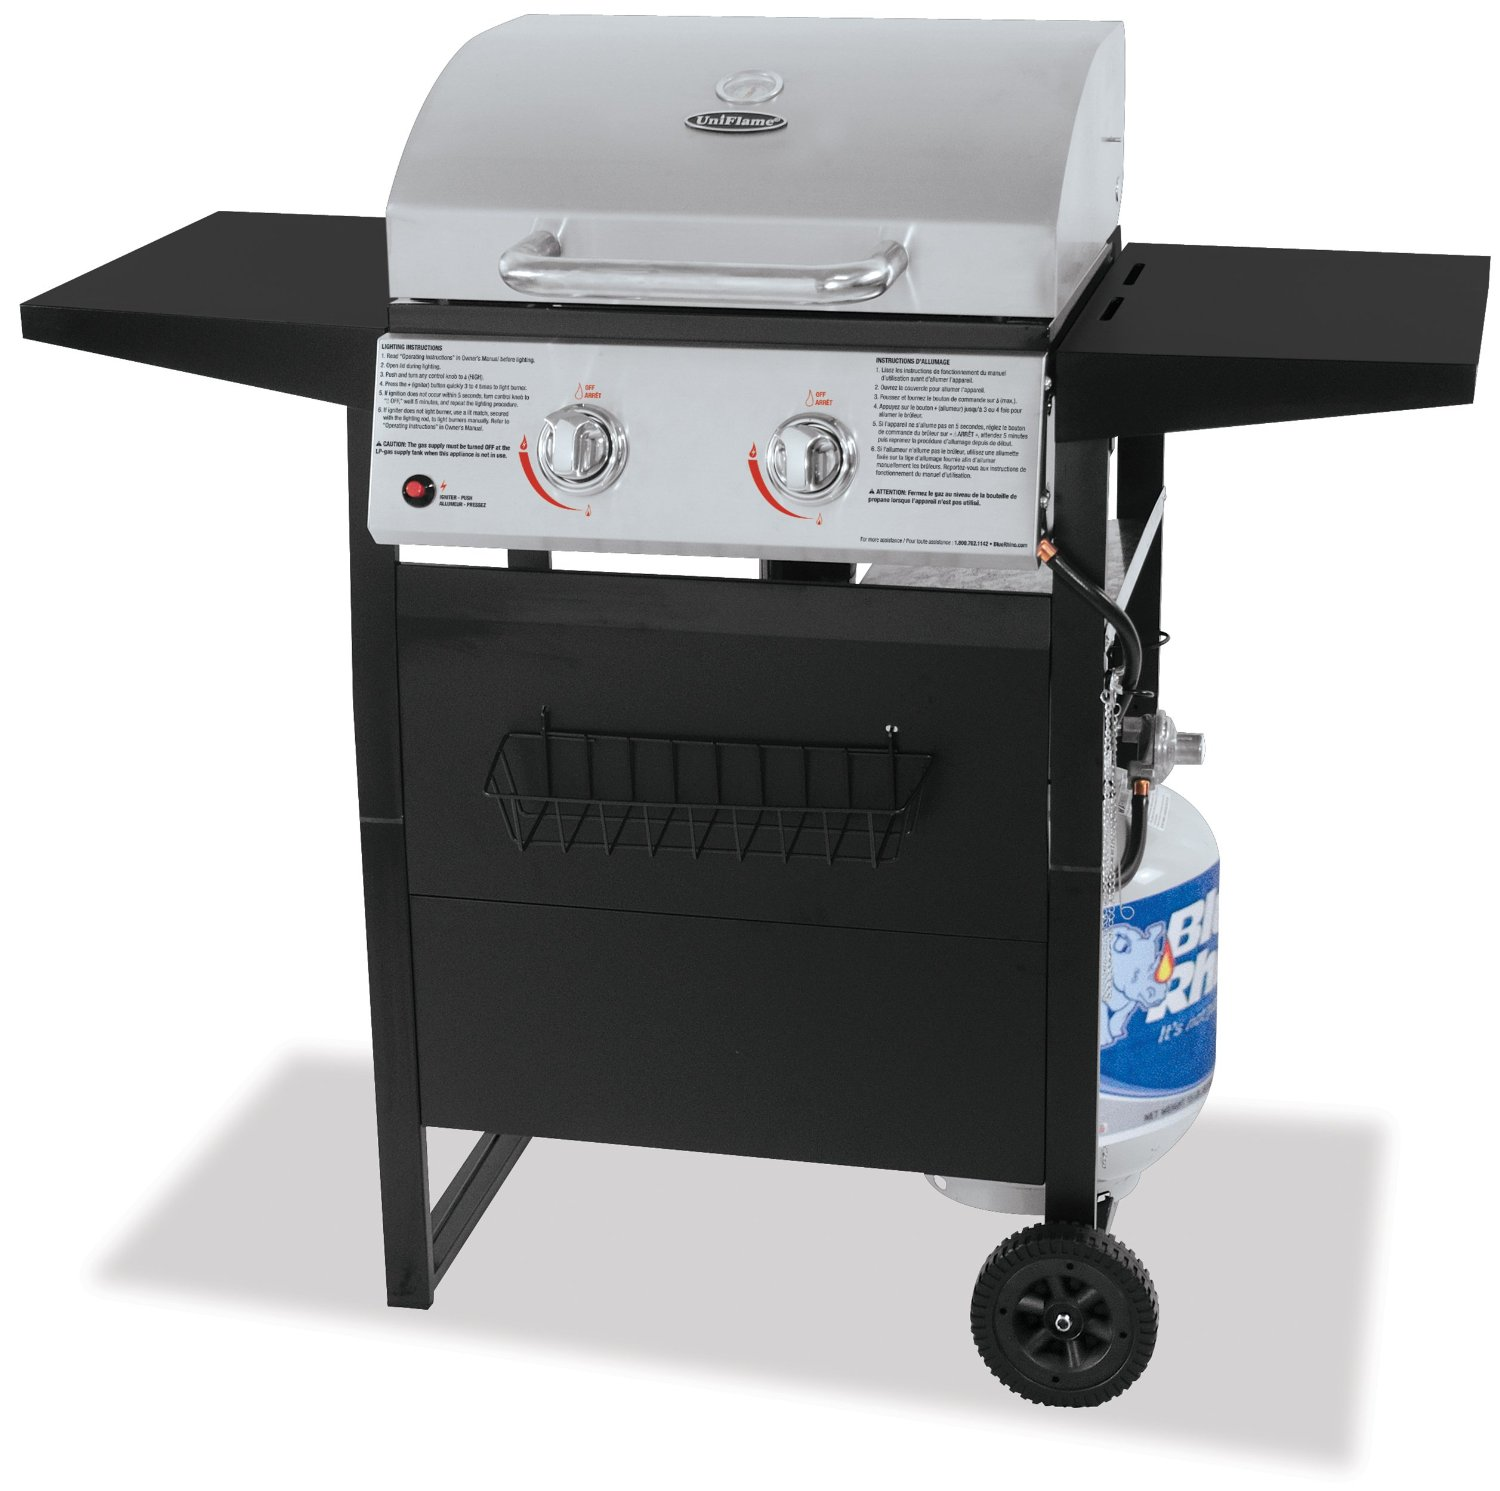 UniFlame Stainless Steel Outdoor LP Gas Barbecue Grill